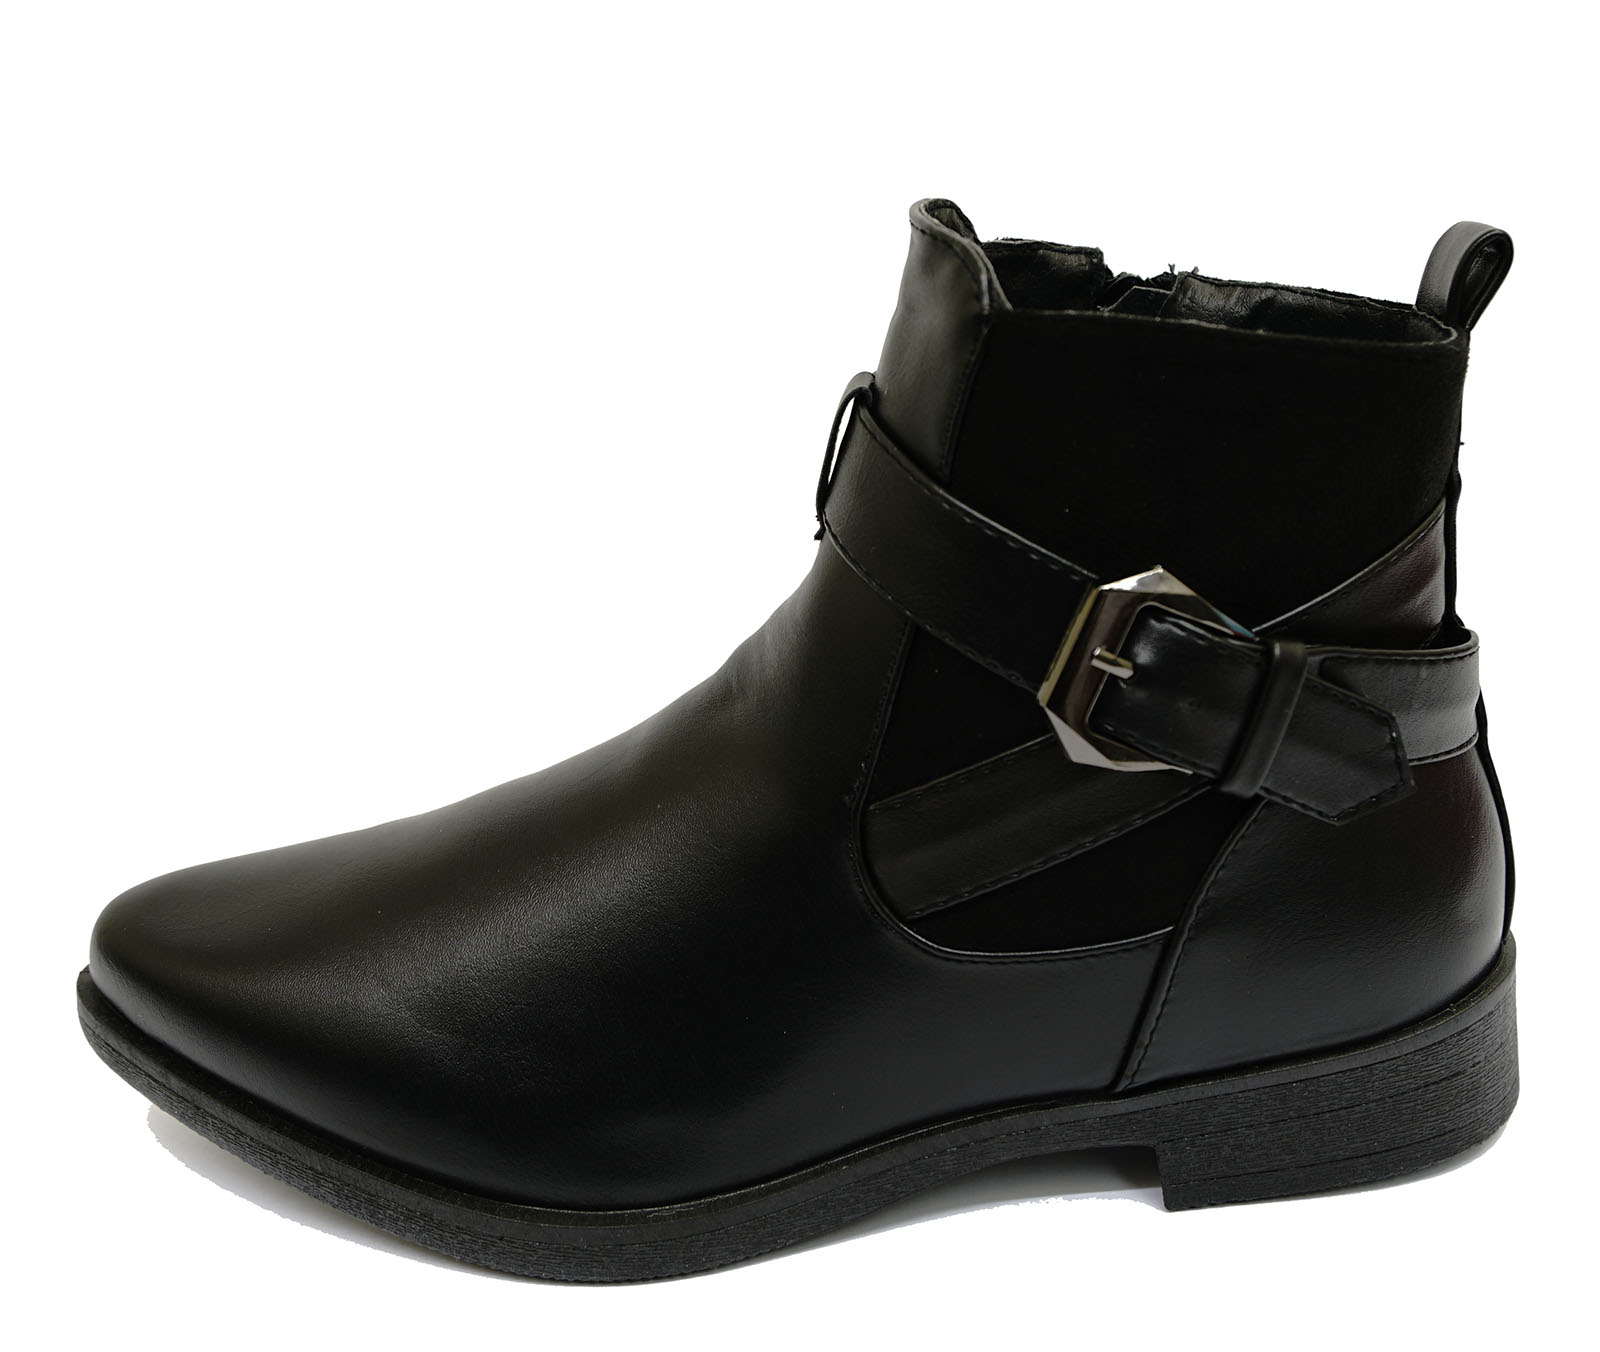 Creative Chelsea Boots Women With Luxury Image In Singapore | Sobatapk.com